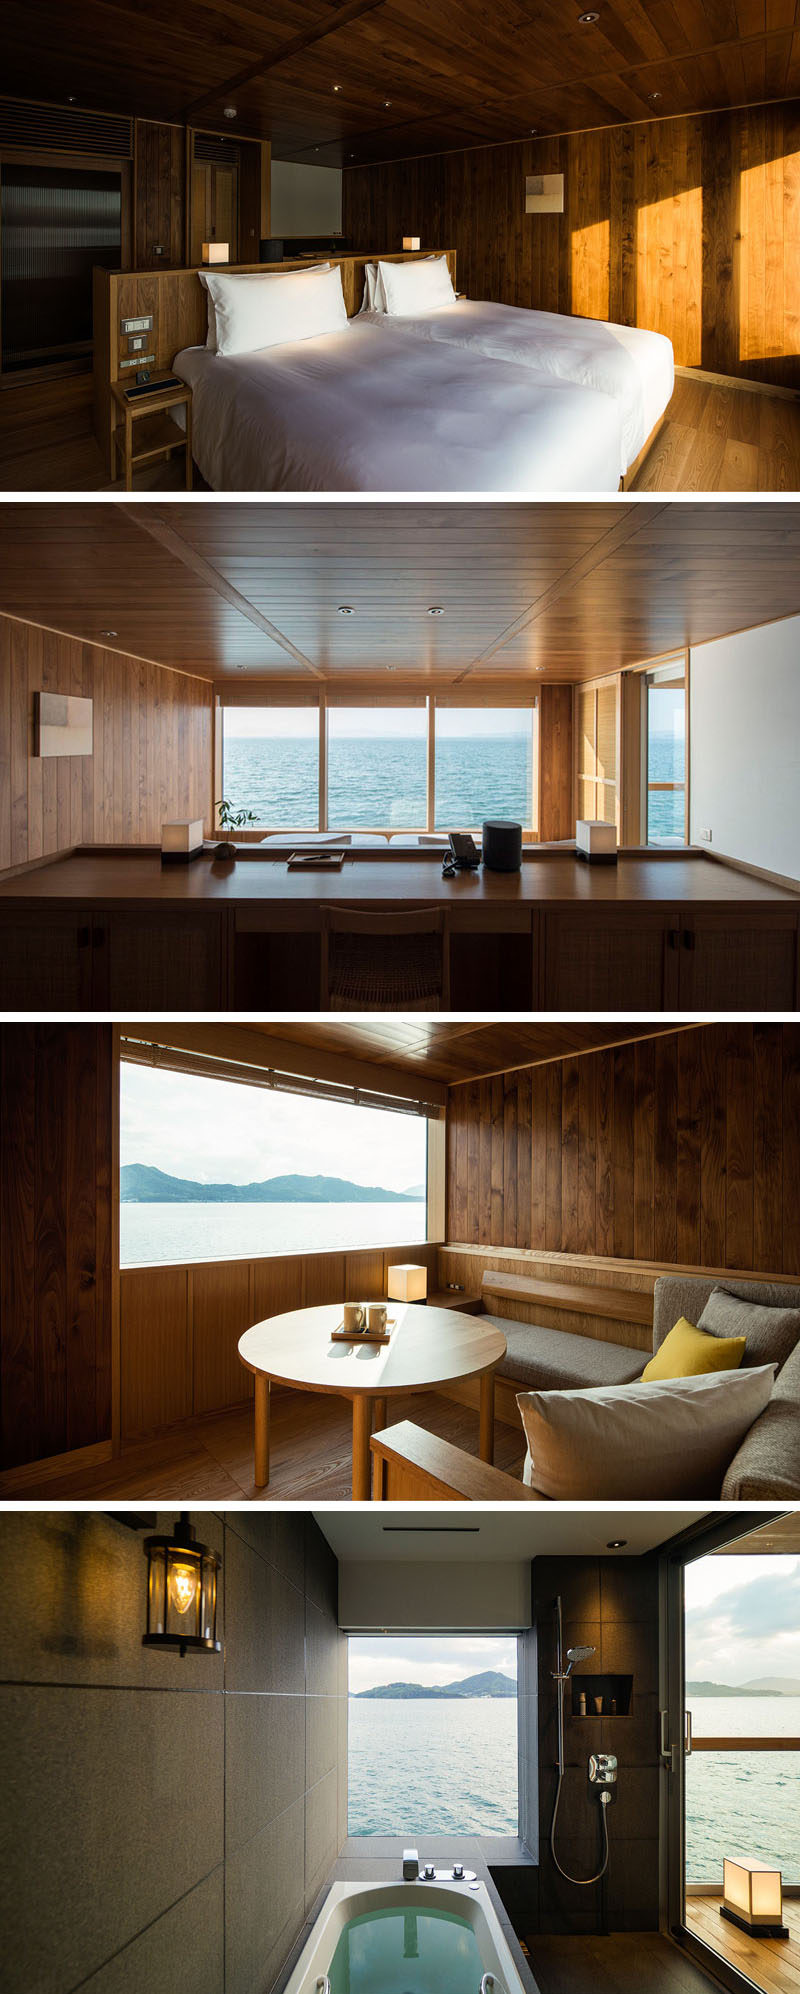 In this modern hotel room, a pony wall creates a separation between the bed and a desk area that's raised to take advantage of the view. This suite also has a built-in semi-outdoor lounge and a bathroom with grey walls and windows that let the natural light in. #ModernHotel #FloatingHotel #Japan